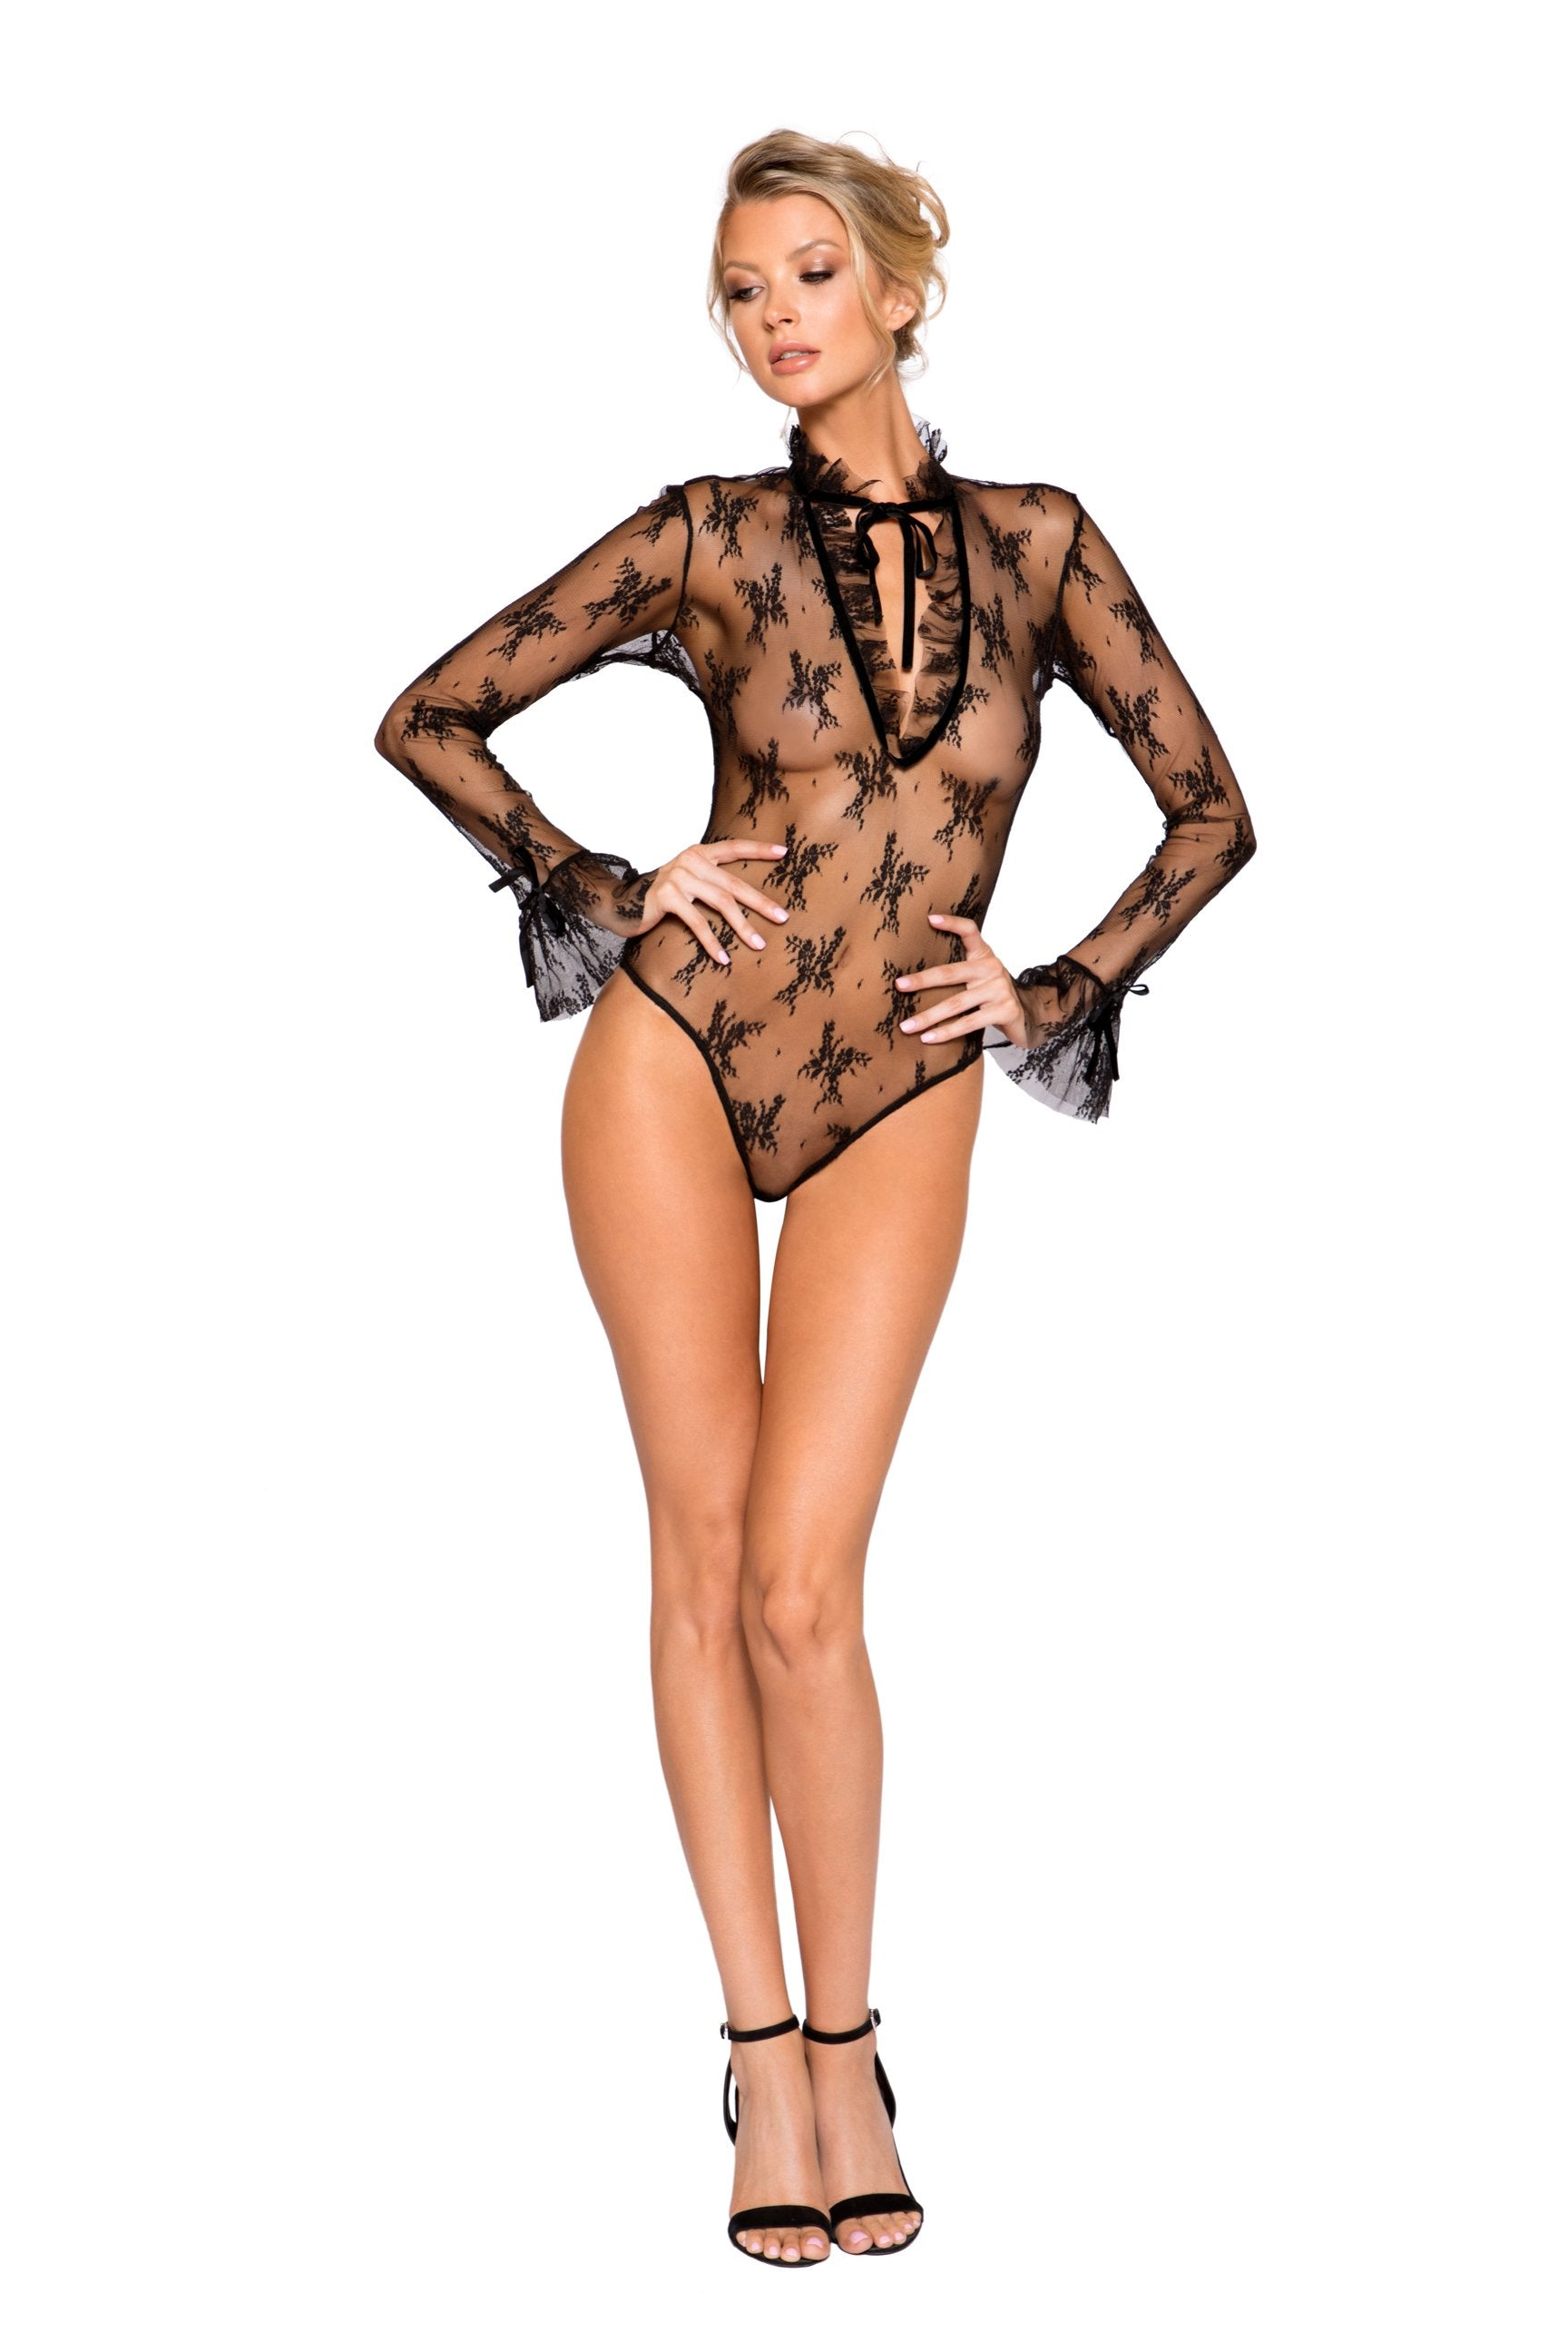 Buy Elegant Long Sleeved Keyhole Teddy with Ruffle Detail & Snap Bottom from Rave Fix for $44.00 with Same Day Shipping Designed by Roma Costume LI248-Blk-S/M